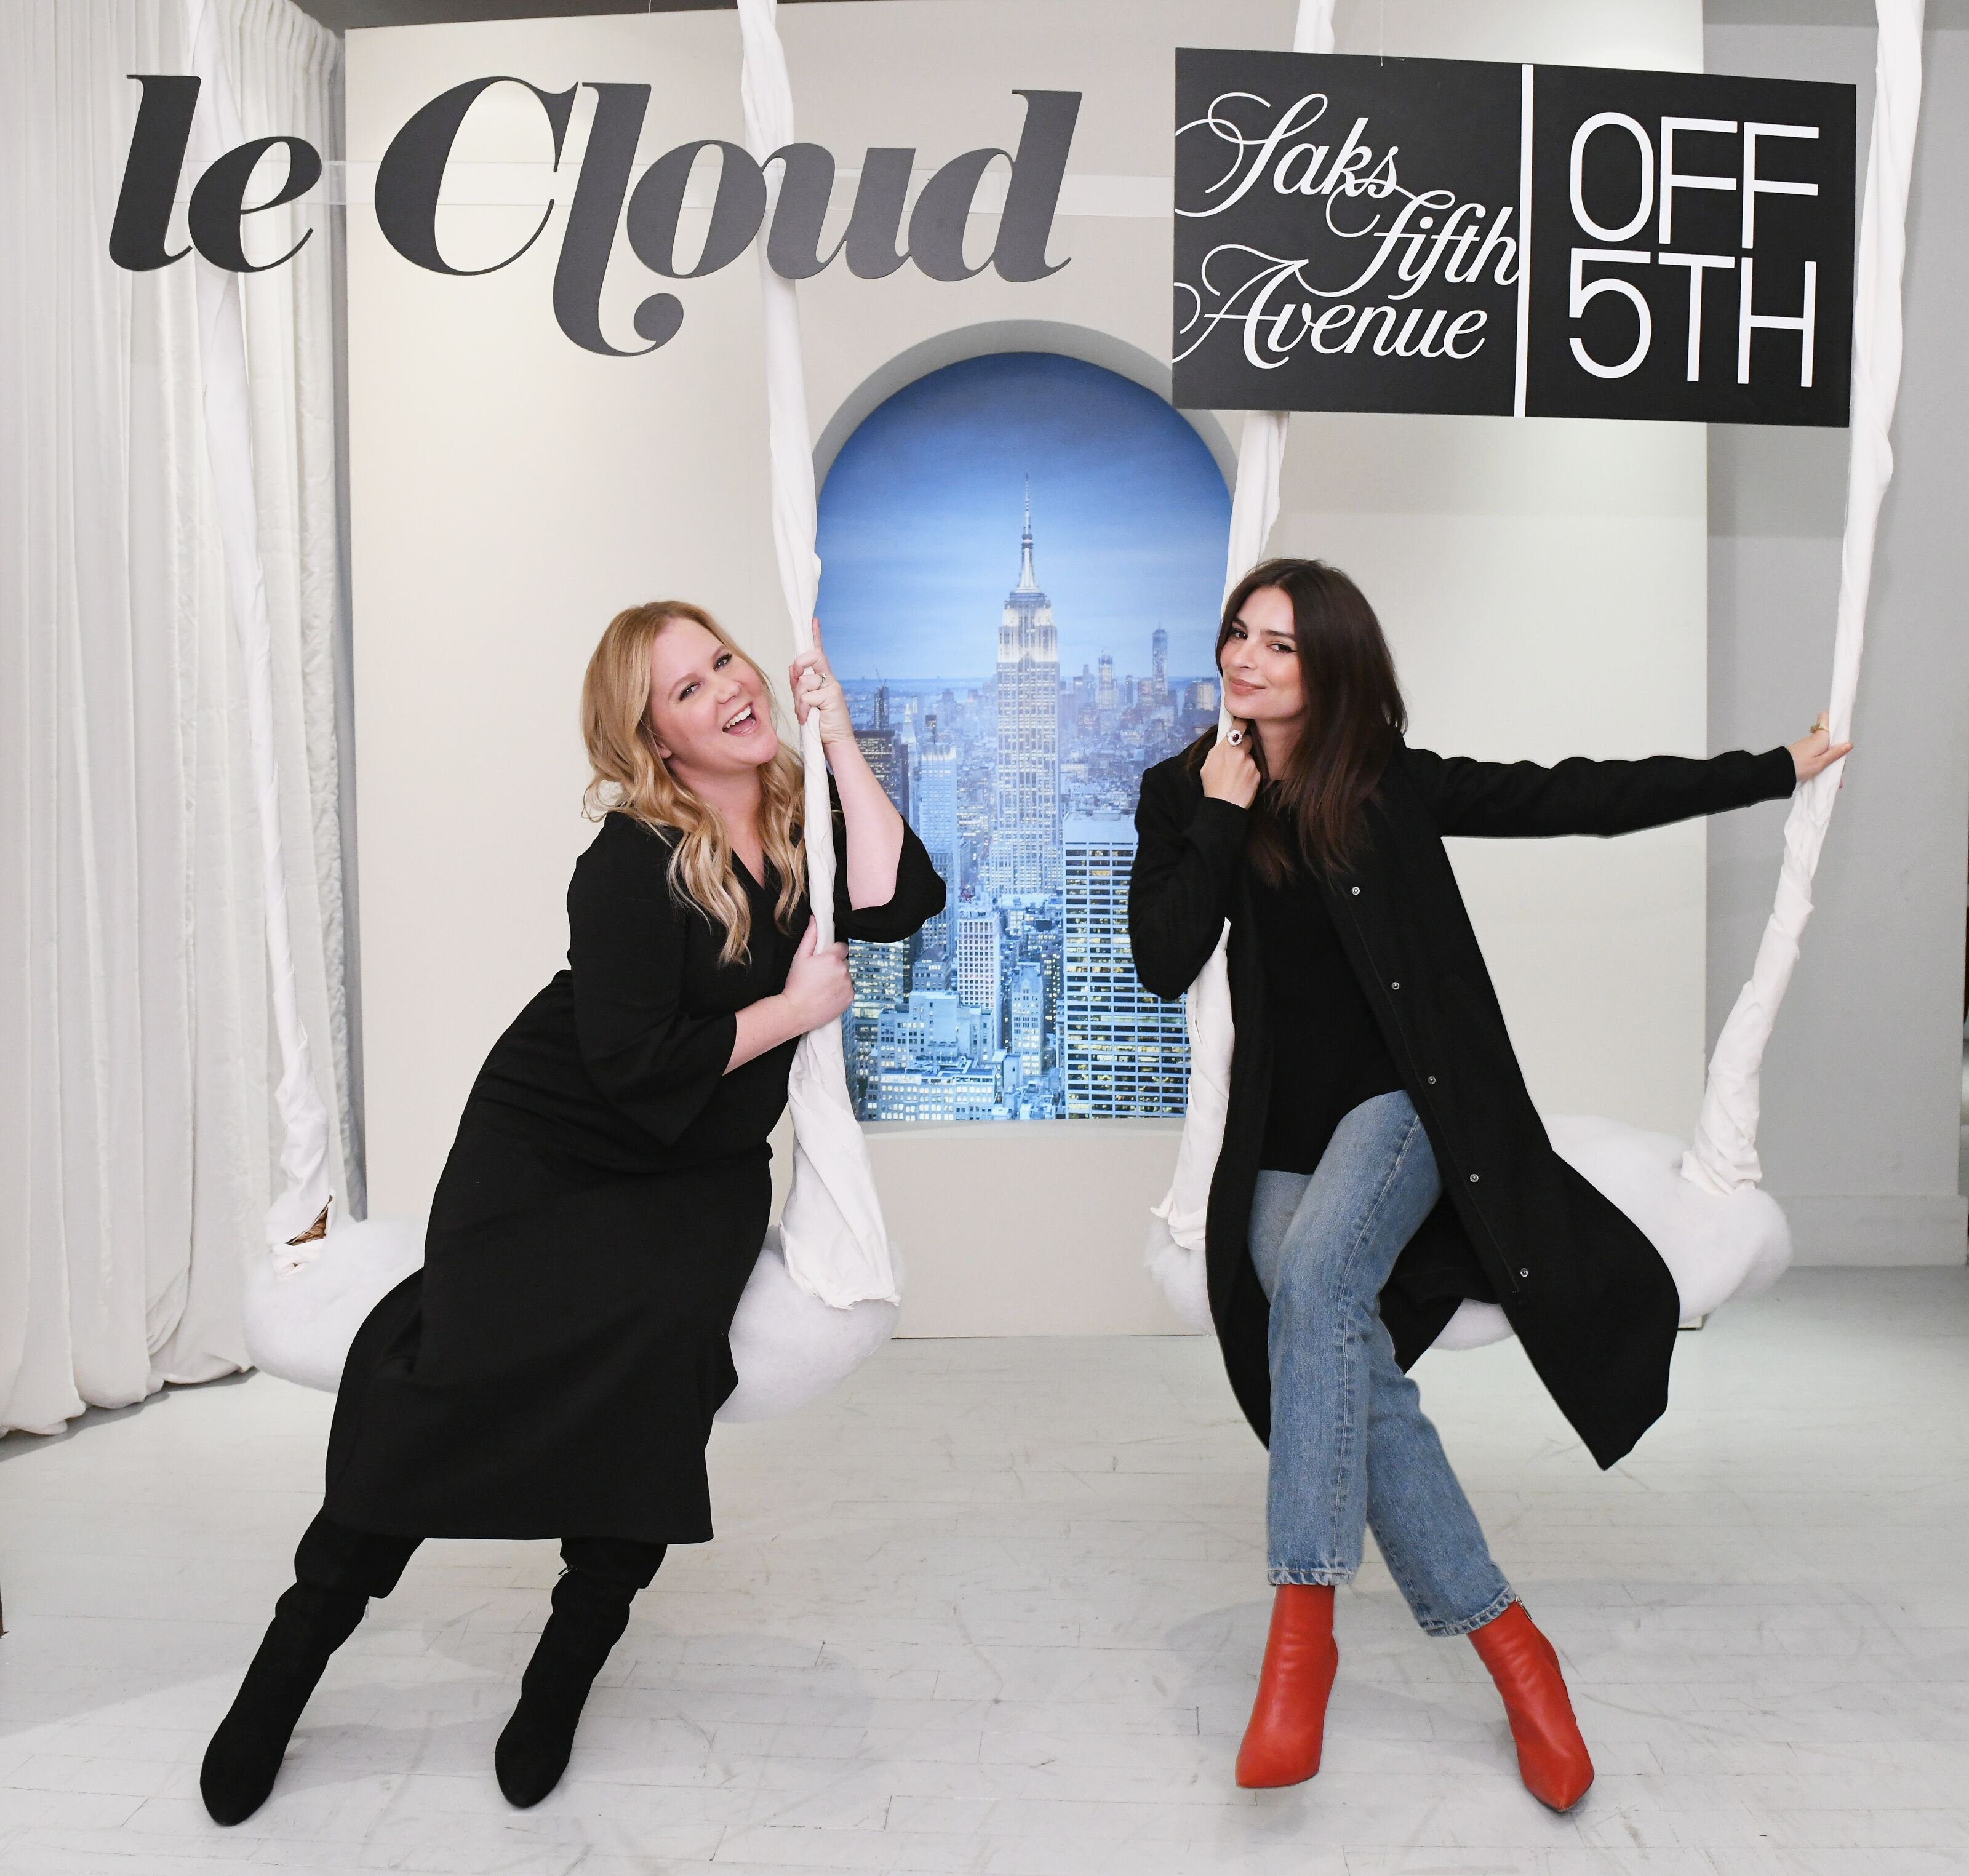 Amy Schumer's Le Cloud collection is bizarre